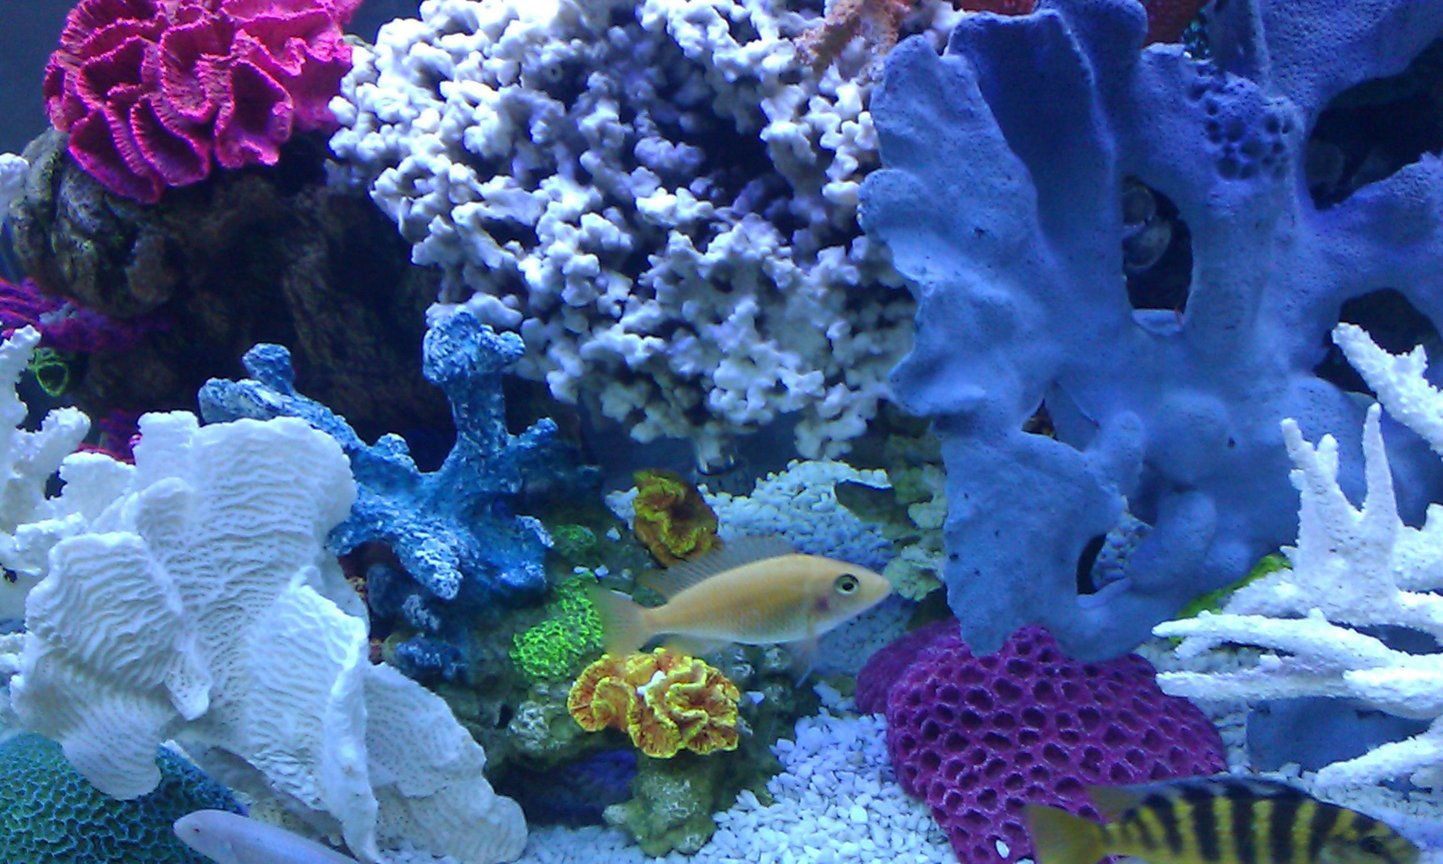 fish tank picture - Cruising the reef, life for him is good.